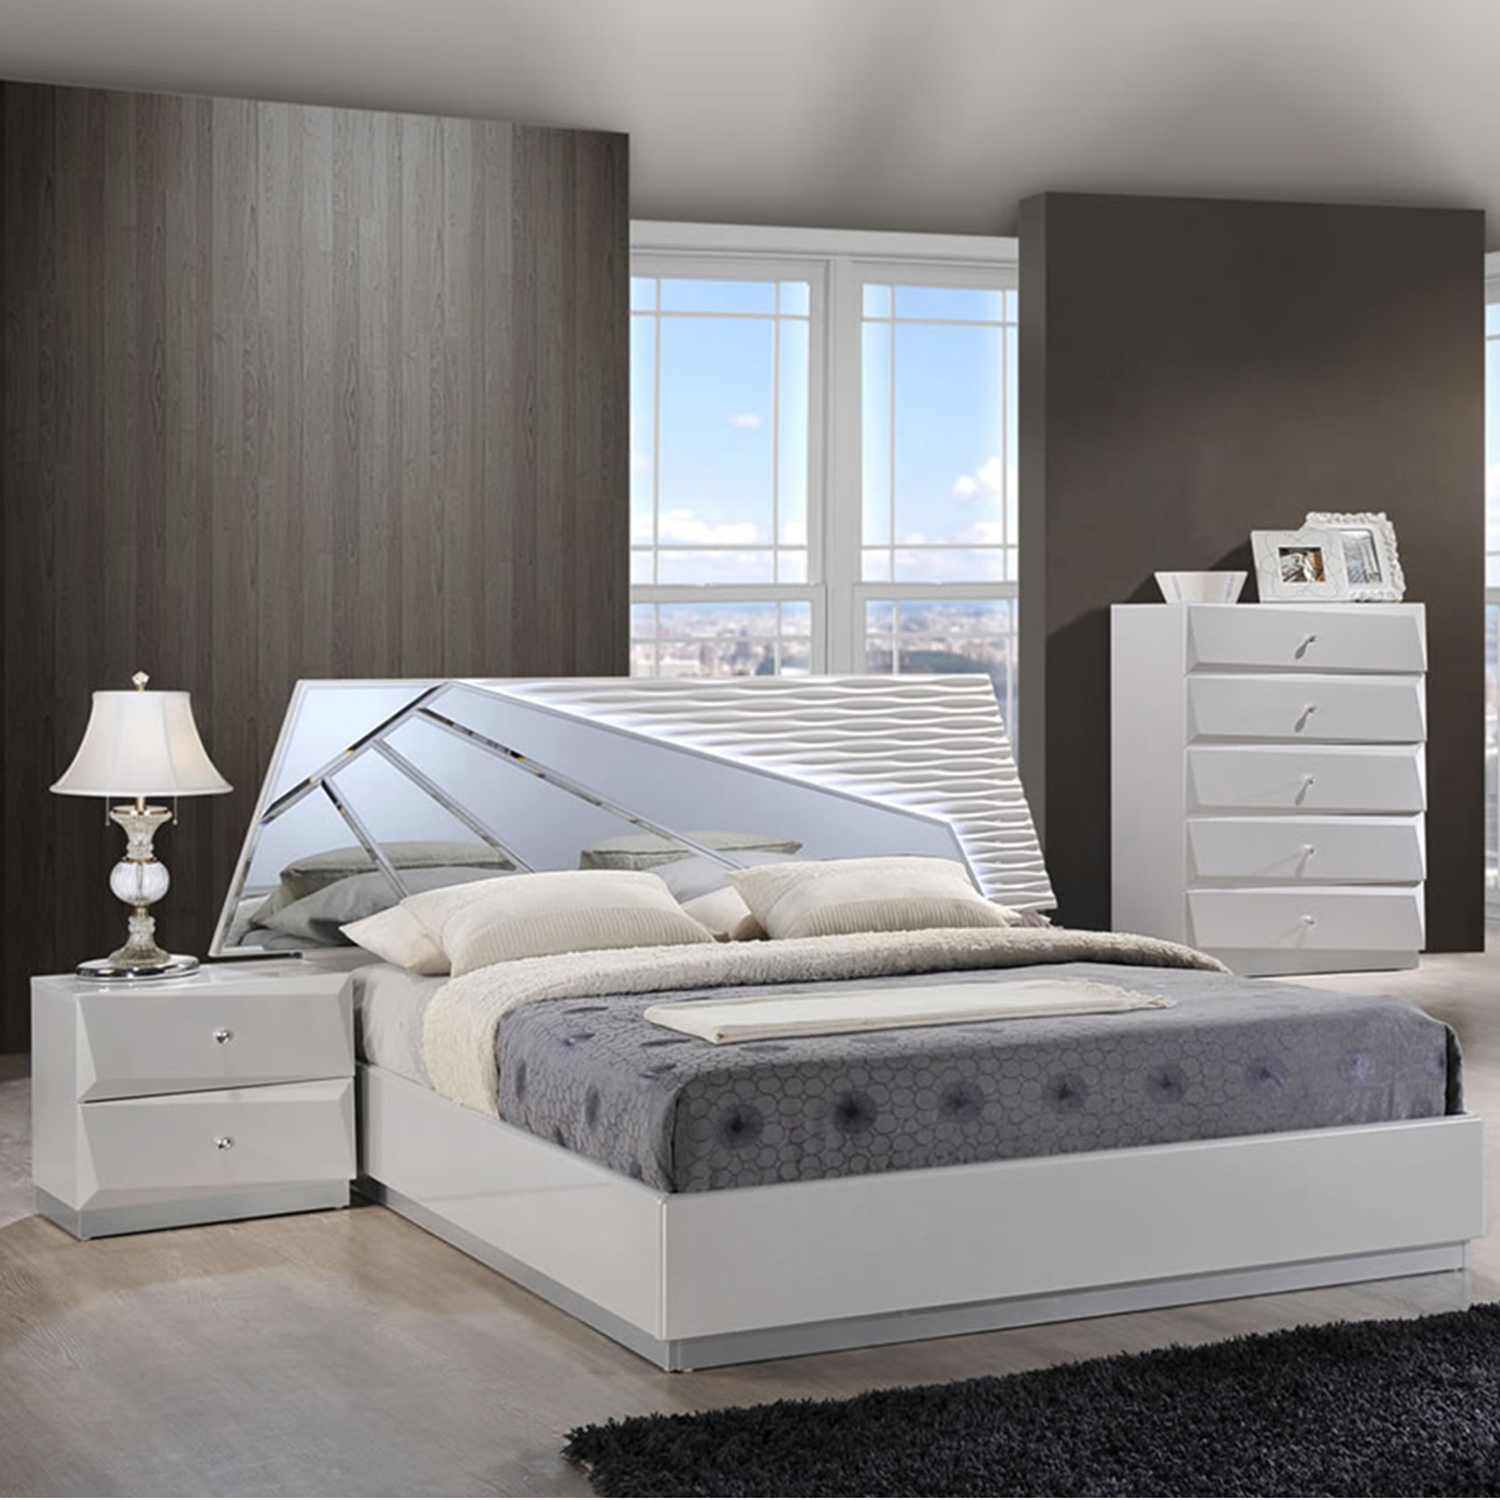 Superieur Barcelona Bedroom Set In High Gloss Silver Line   GLO BARCELONA 116 BED ...